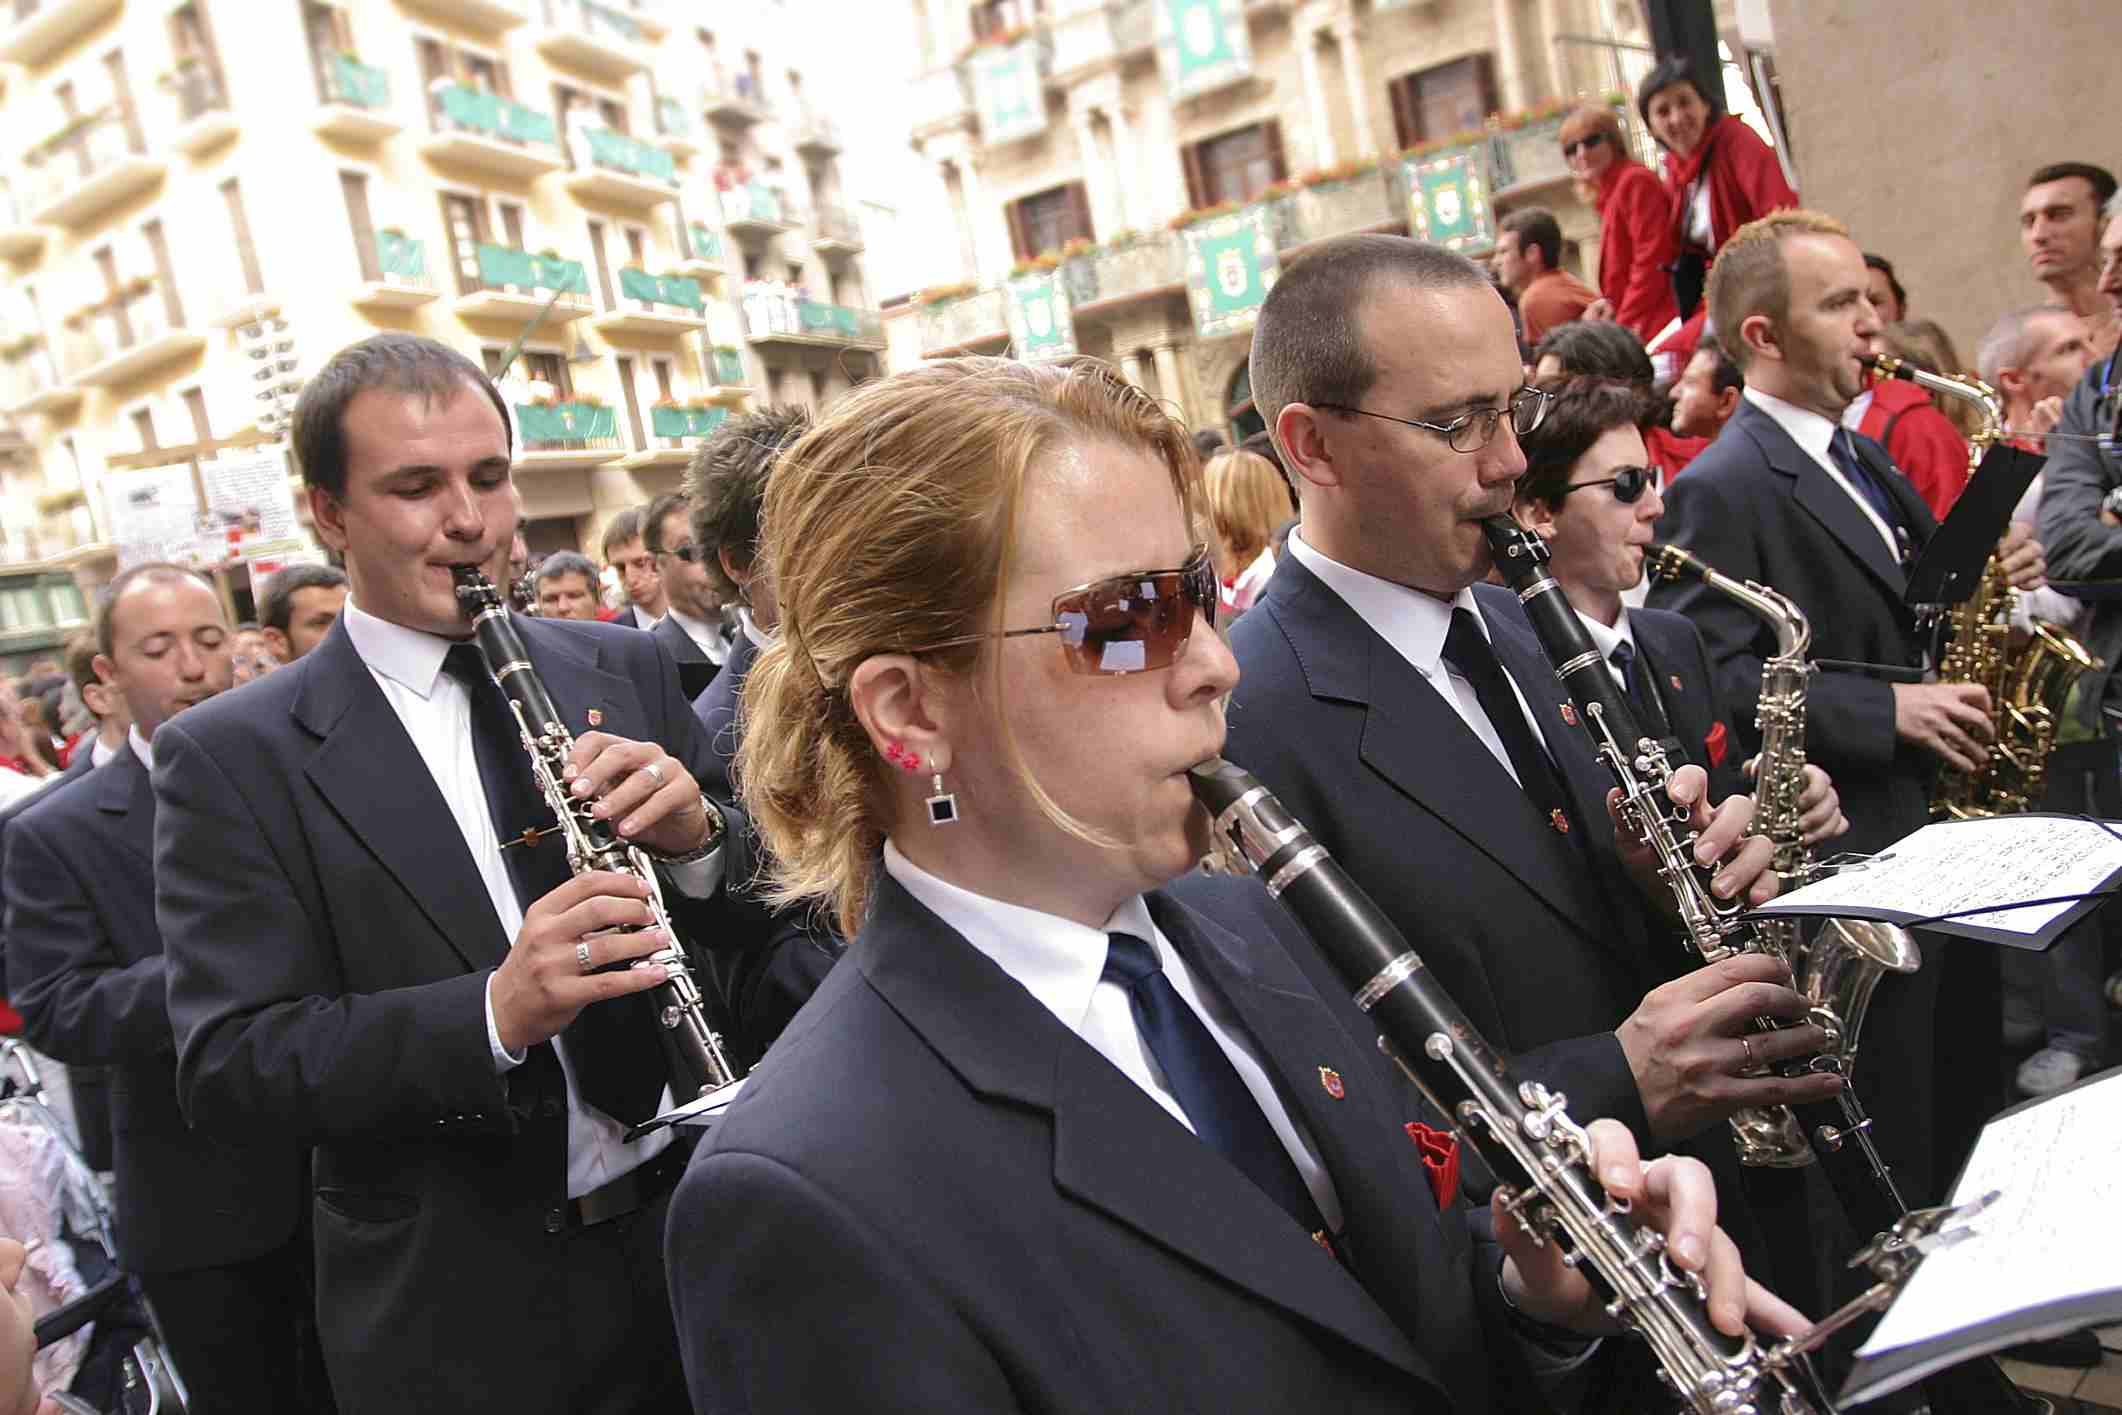 Clarinet---Dominic-Bonuccelli---Lonely-Planet-Images---Getty-Images-148866213.jpg